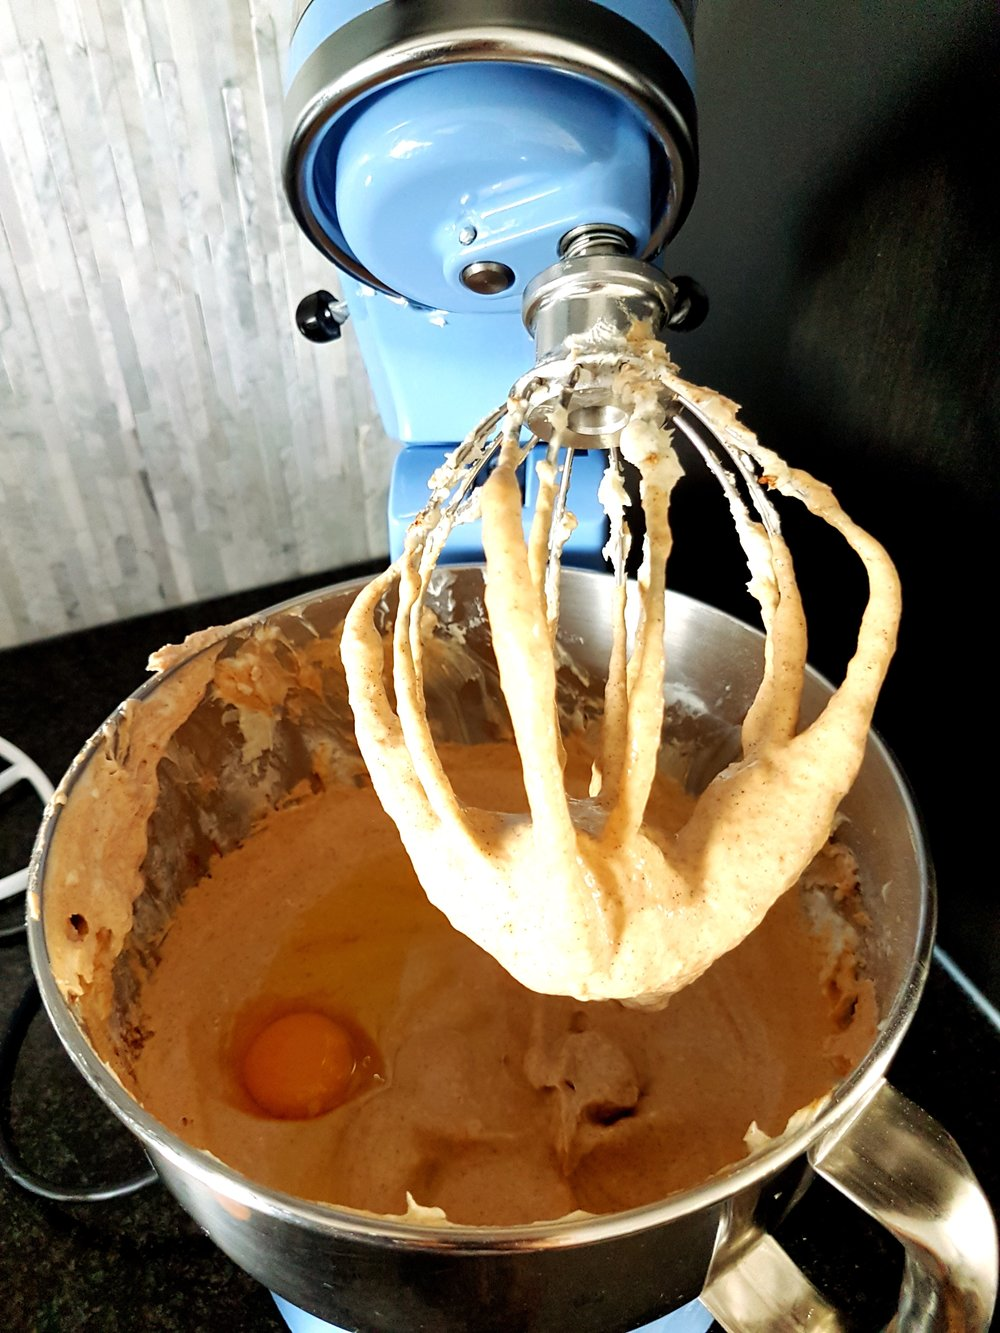 Cheesecake batter in a stand mixer.